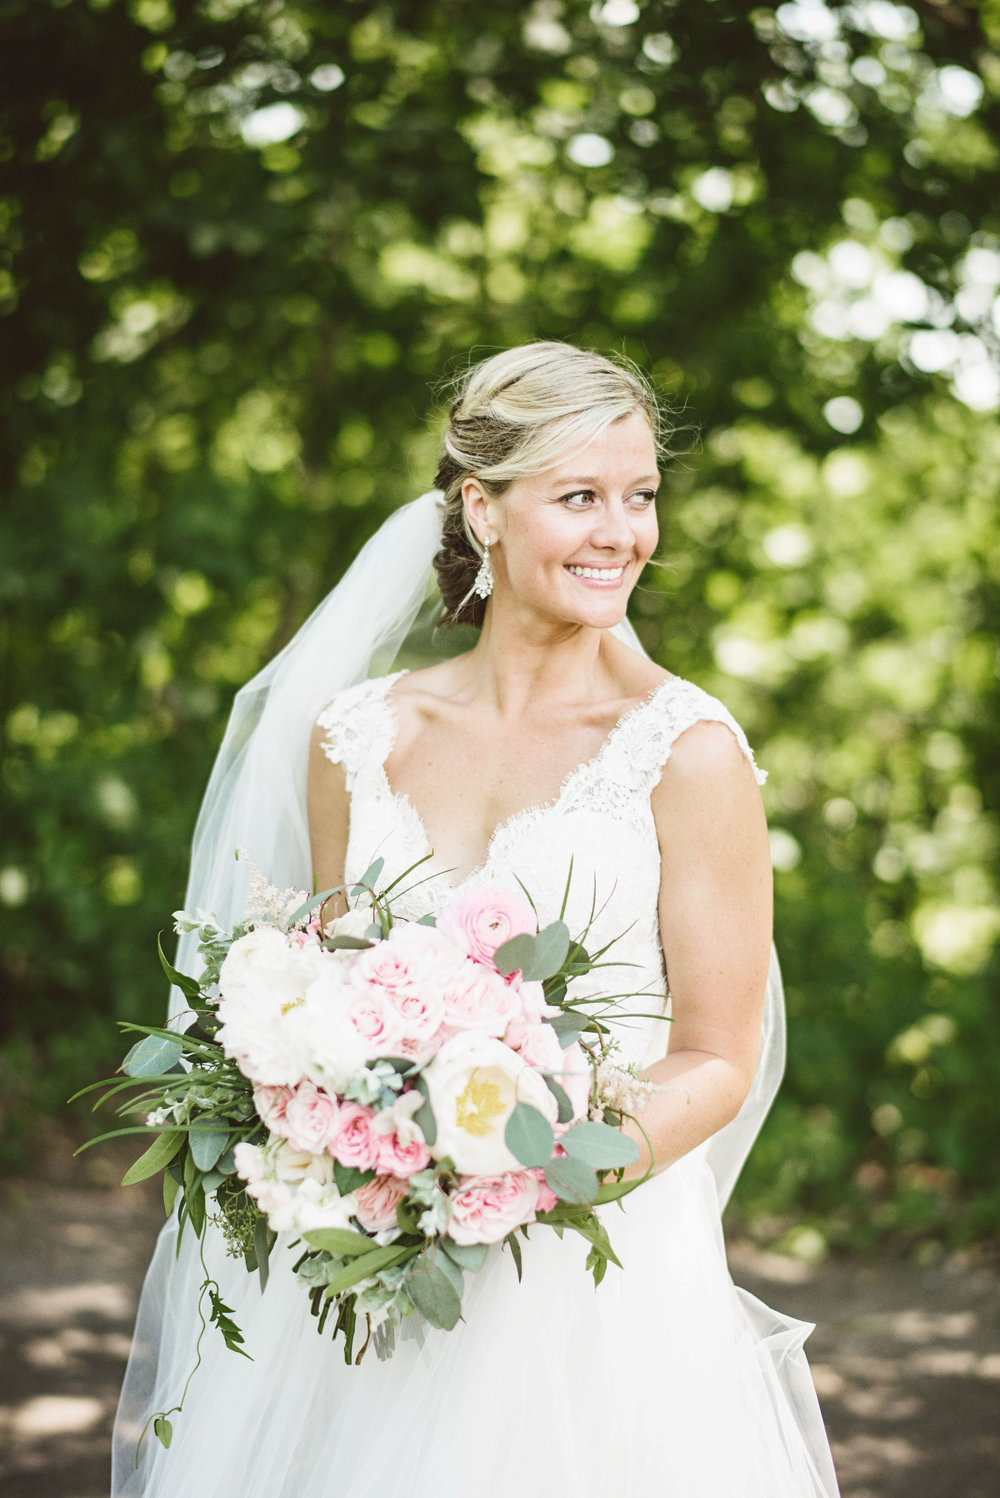 maura_david_wedding_portraits_by_lucas_botz_photography_0251